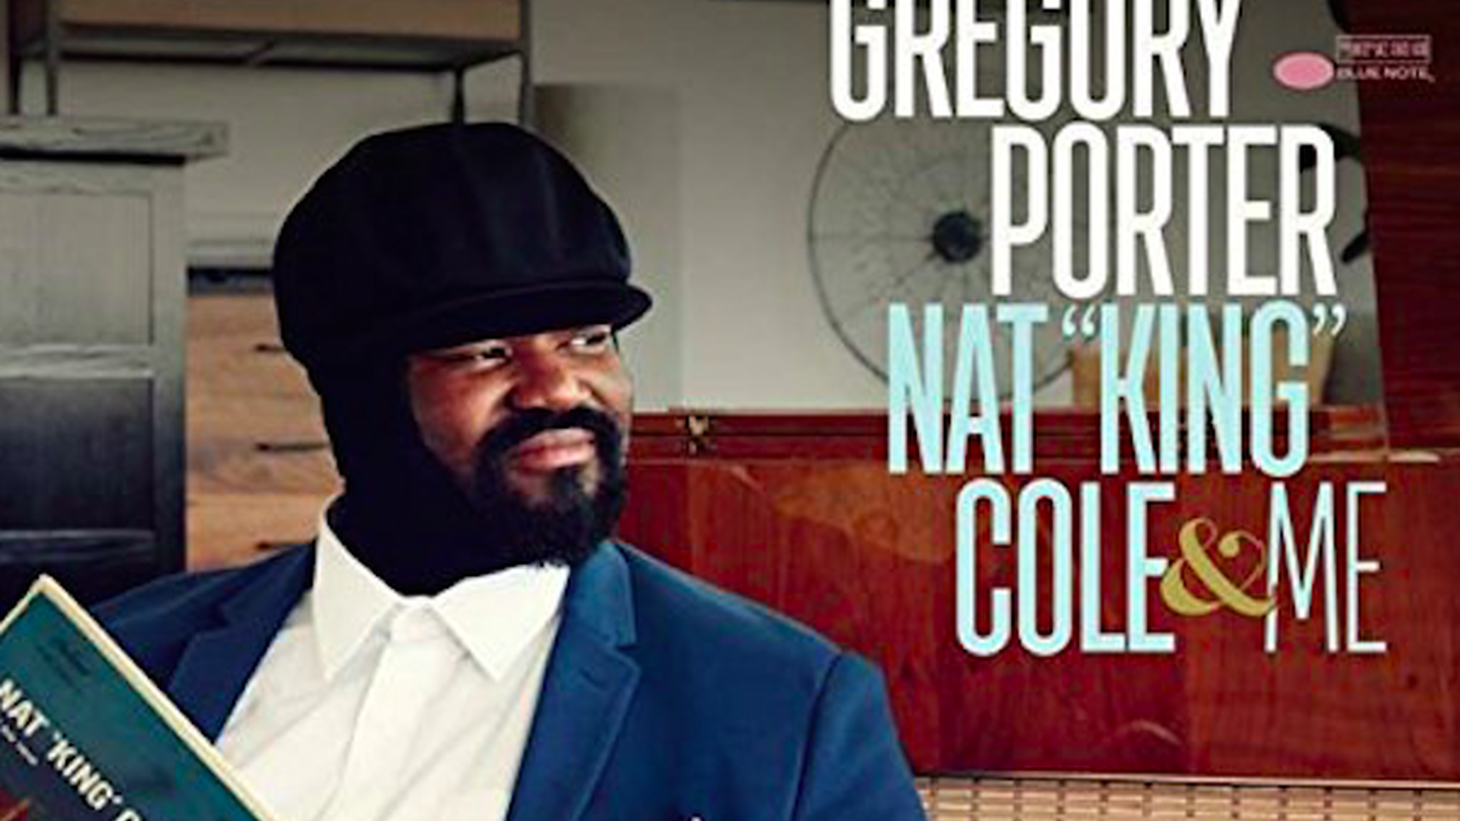 Rhythm Planet revisits the best jazz sides of 2017, including releases from Gregory Porter, Jazzmeia Horn, Charles Lloyd, John Abercrombie, and more.